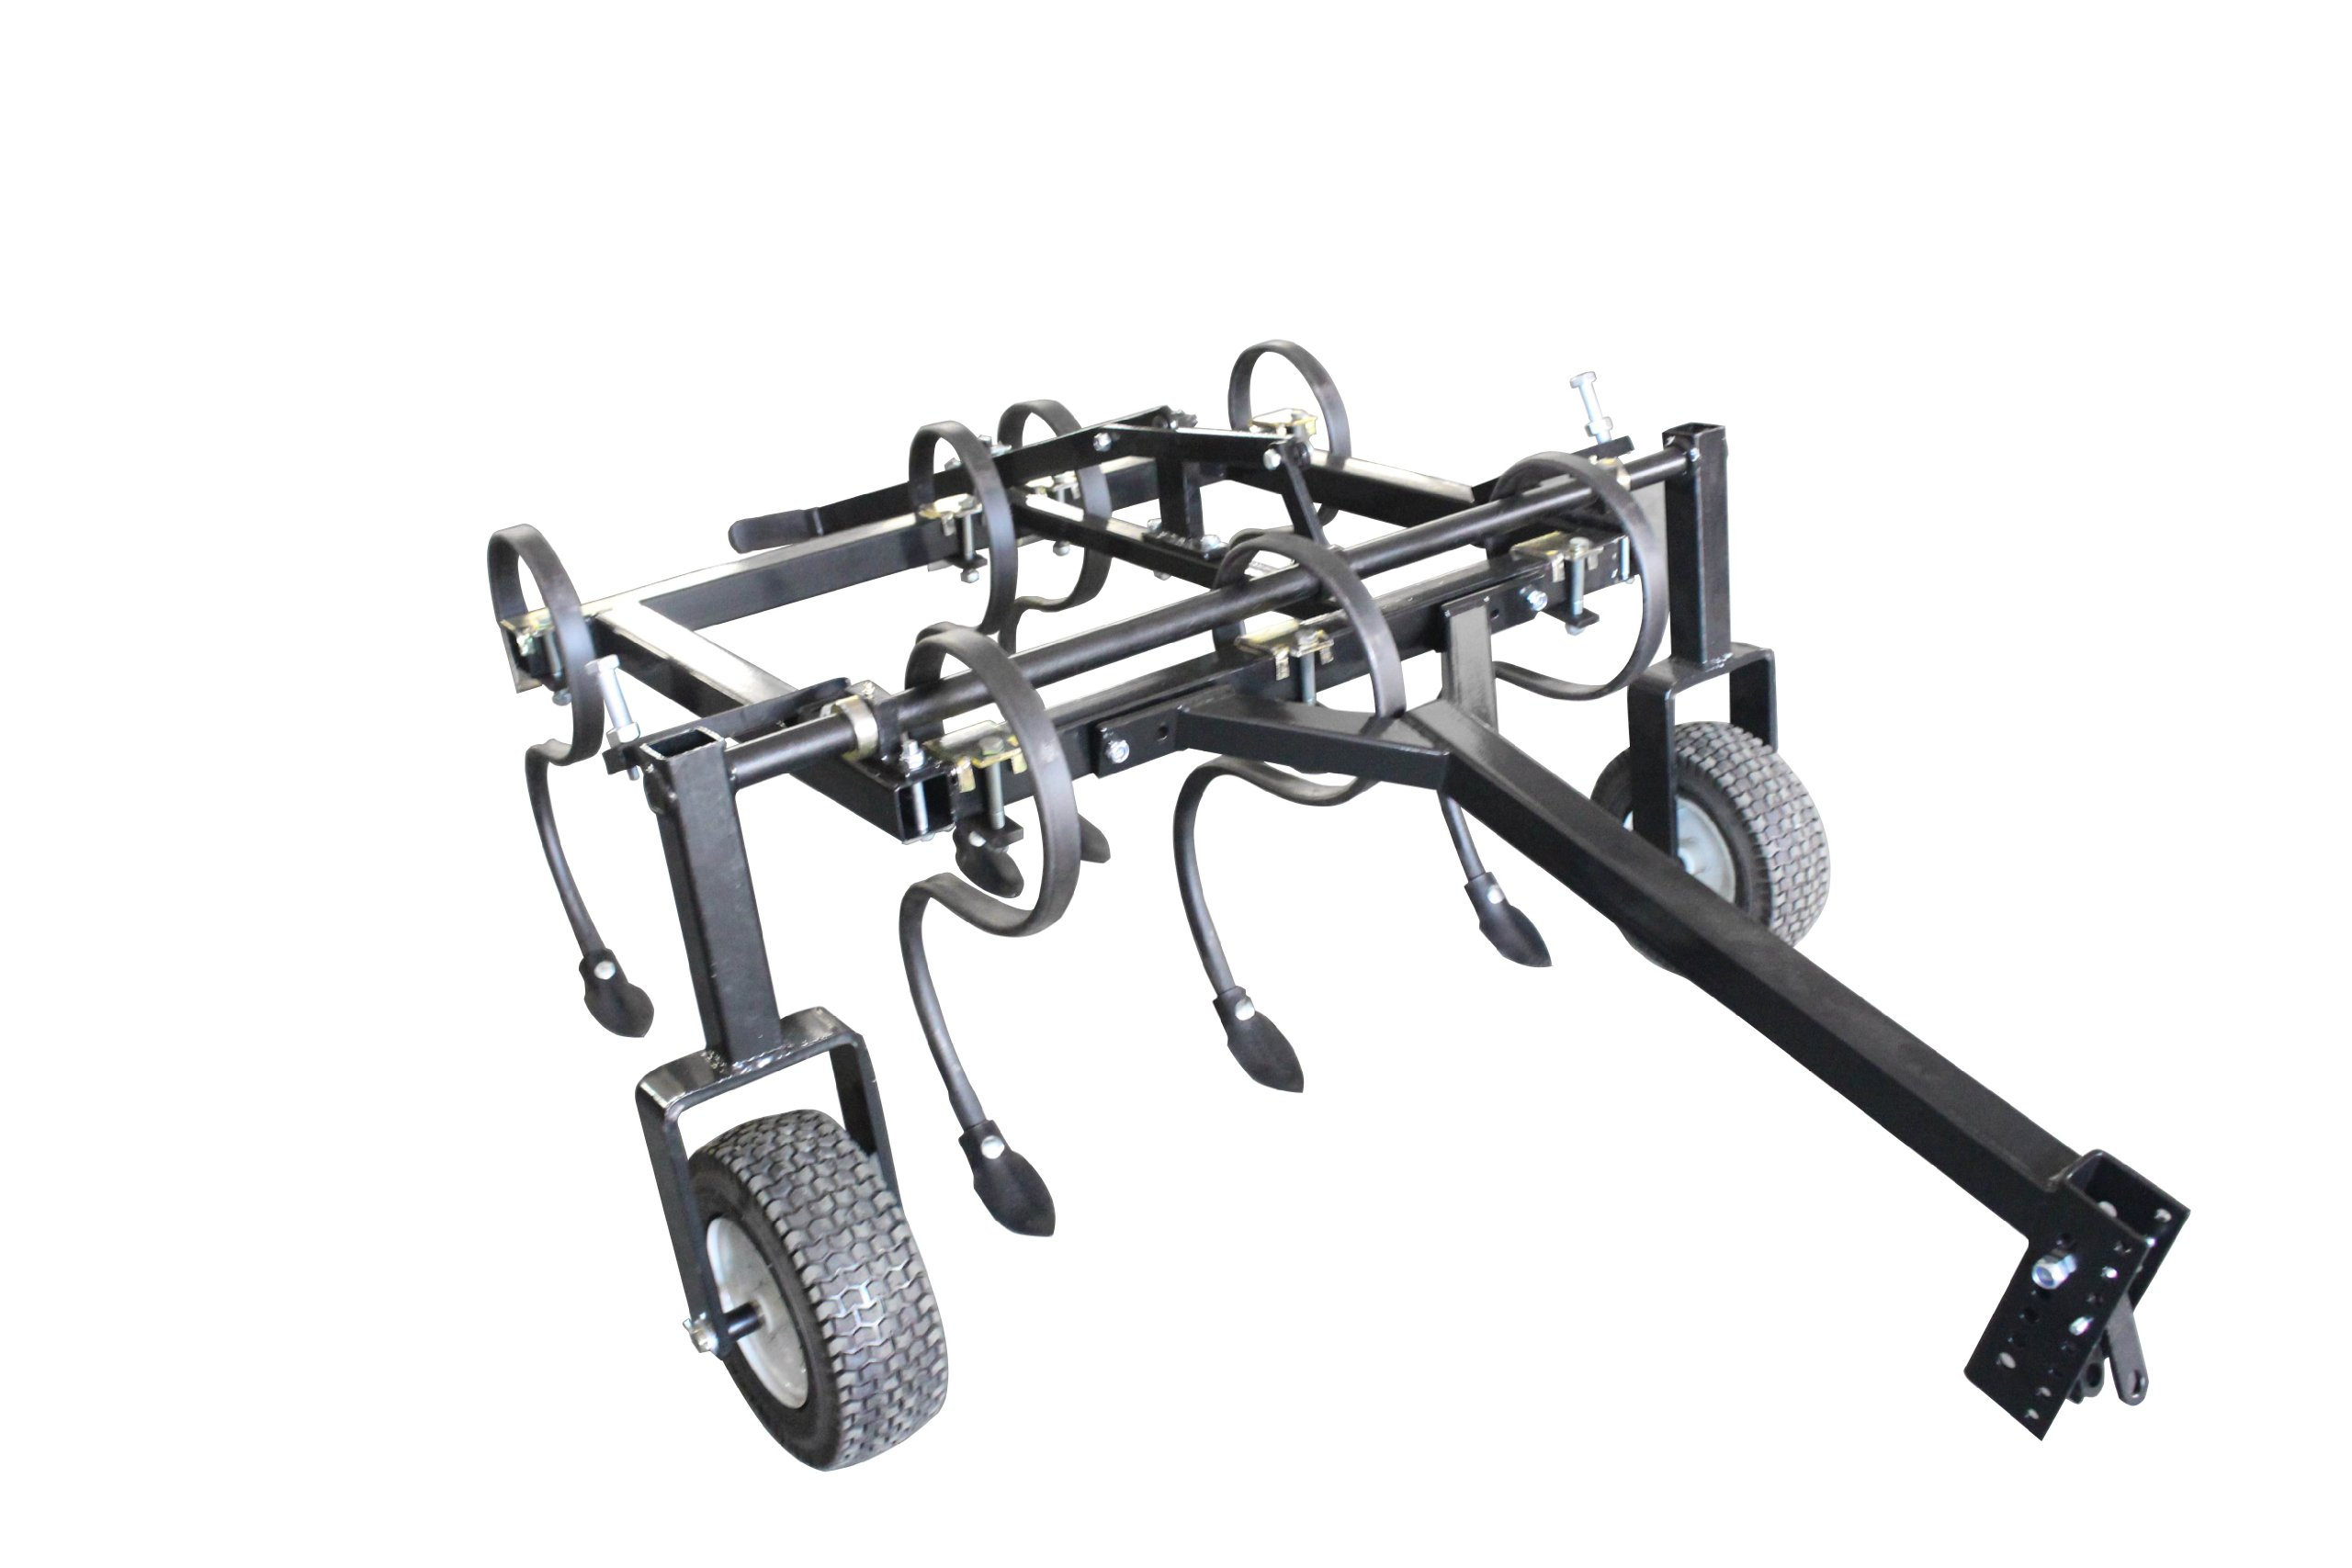 48'' ATV Tow-Behind Cultivator